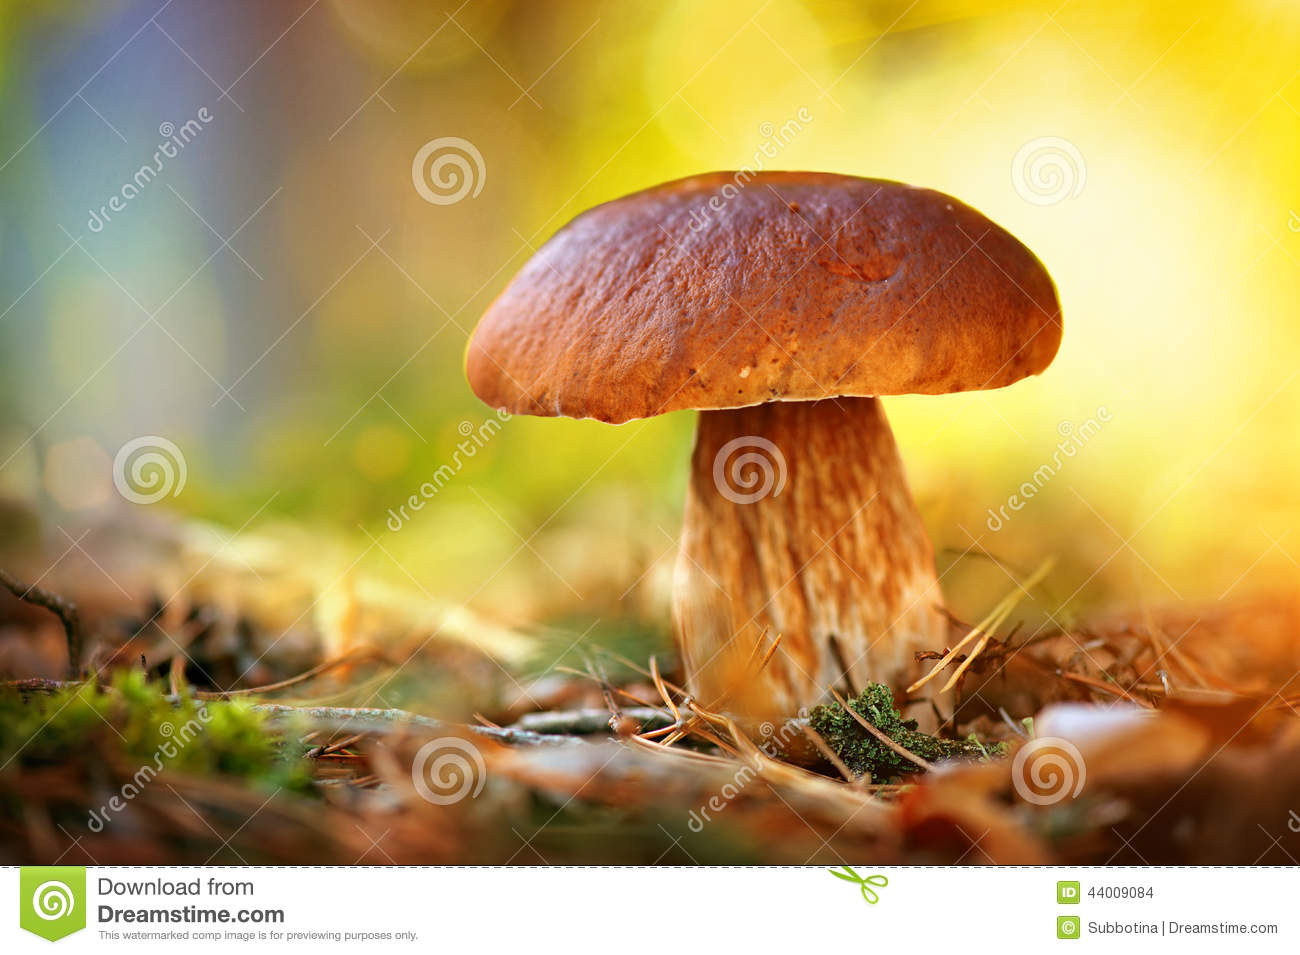 Cep mushroom growing in autumn forest